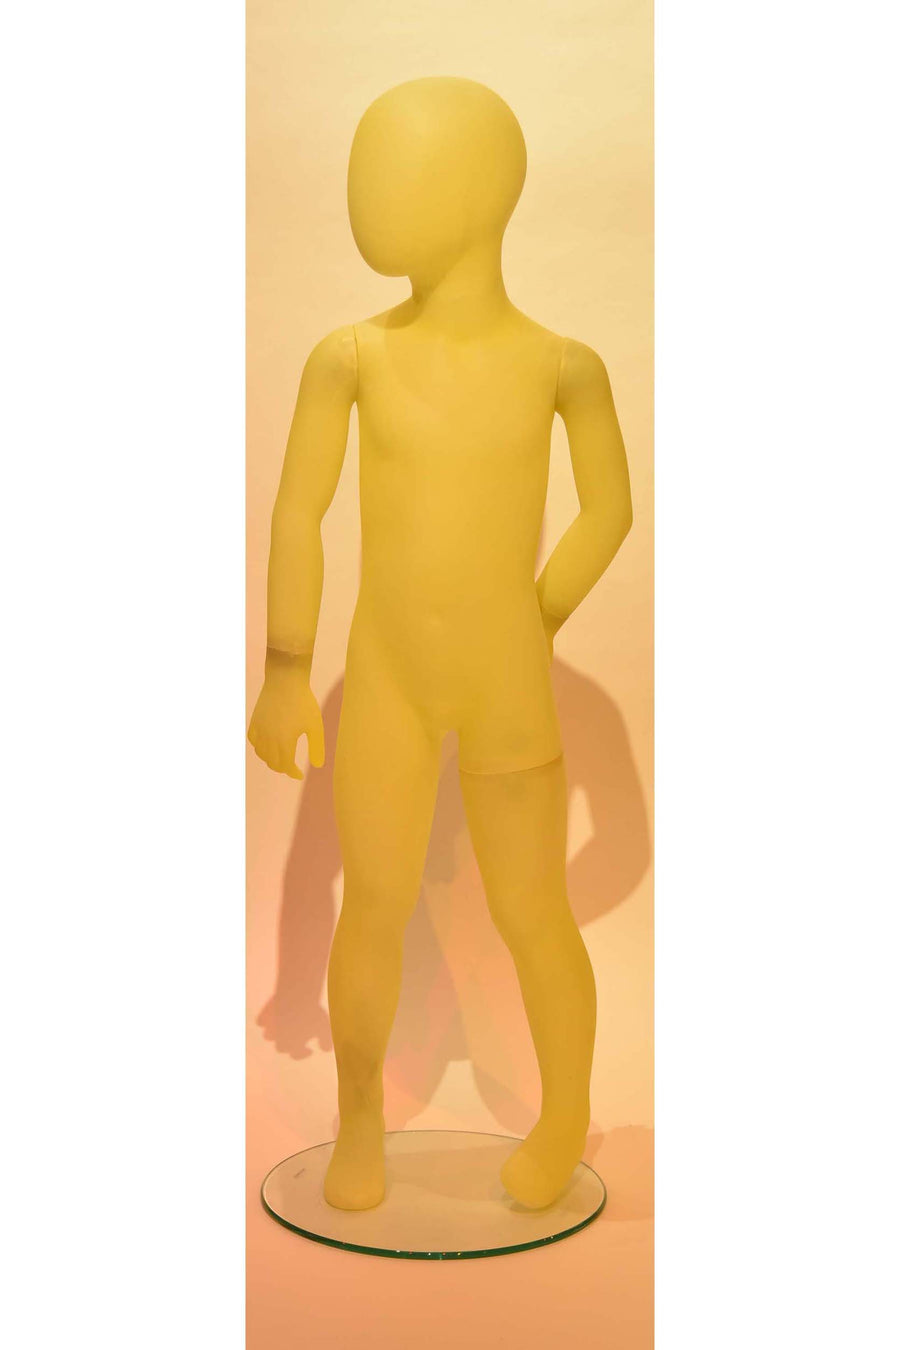 frosted yellow kid mannequin with left hand on hip